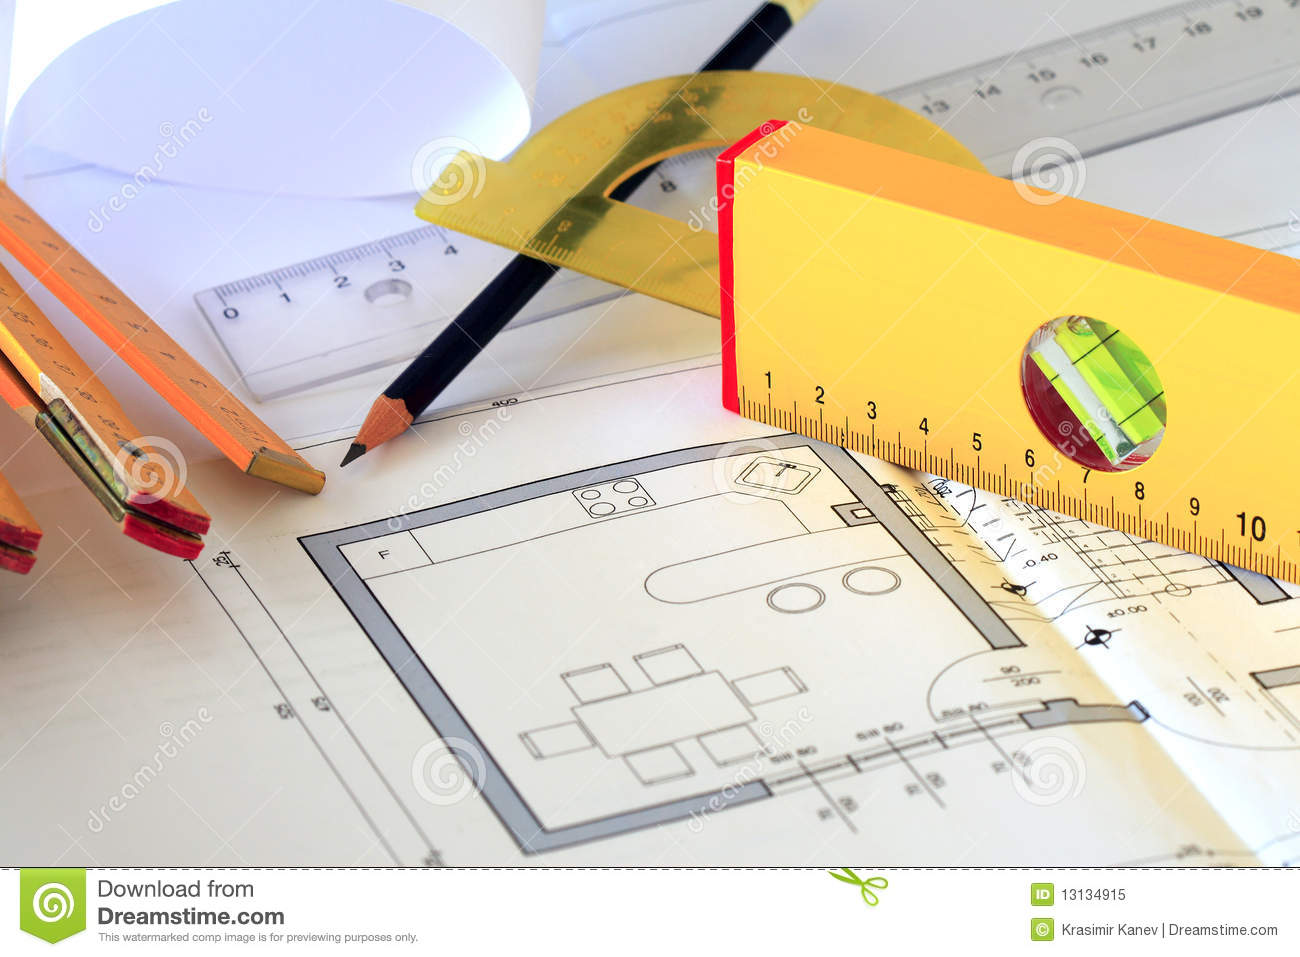 Architectural drawings and tools royalty free stock photo for Online architecture design tool